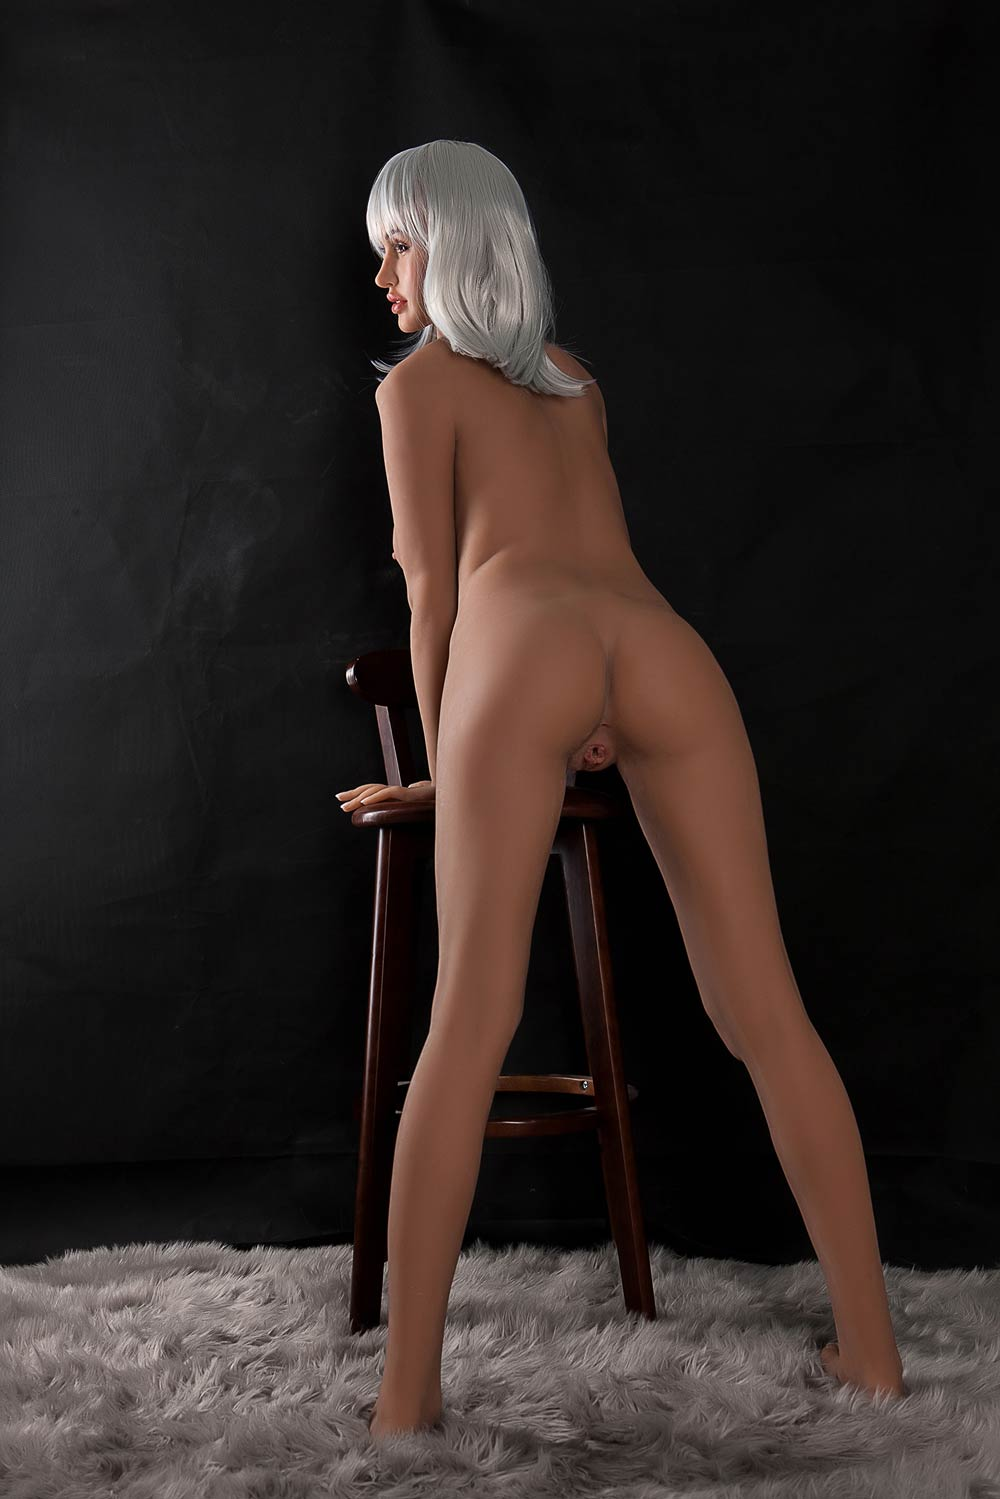 Silicone sex doll with hands on stool